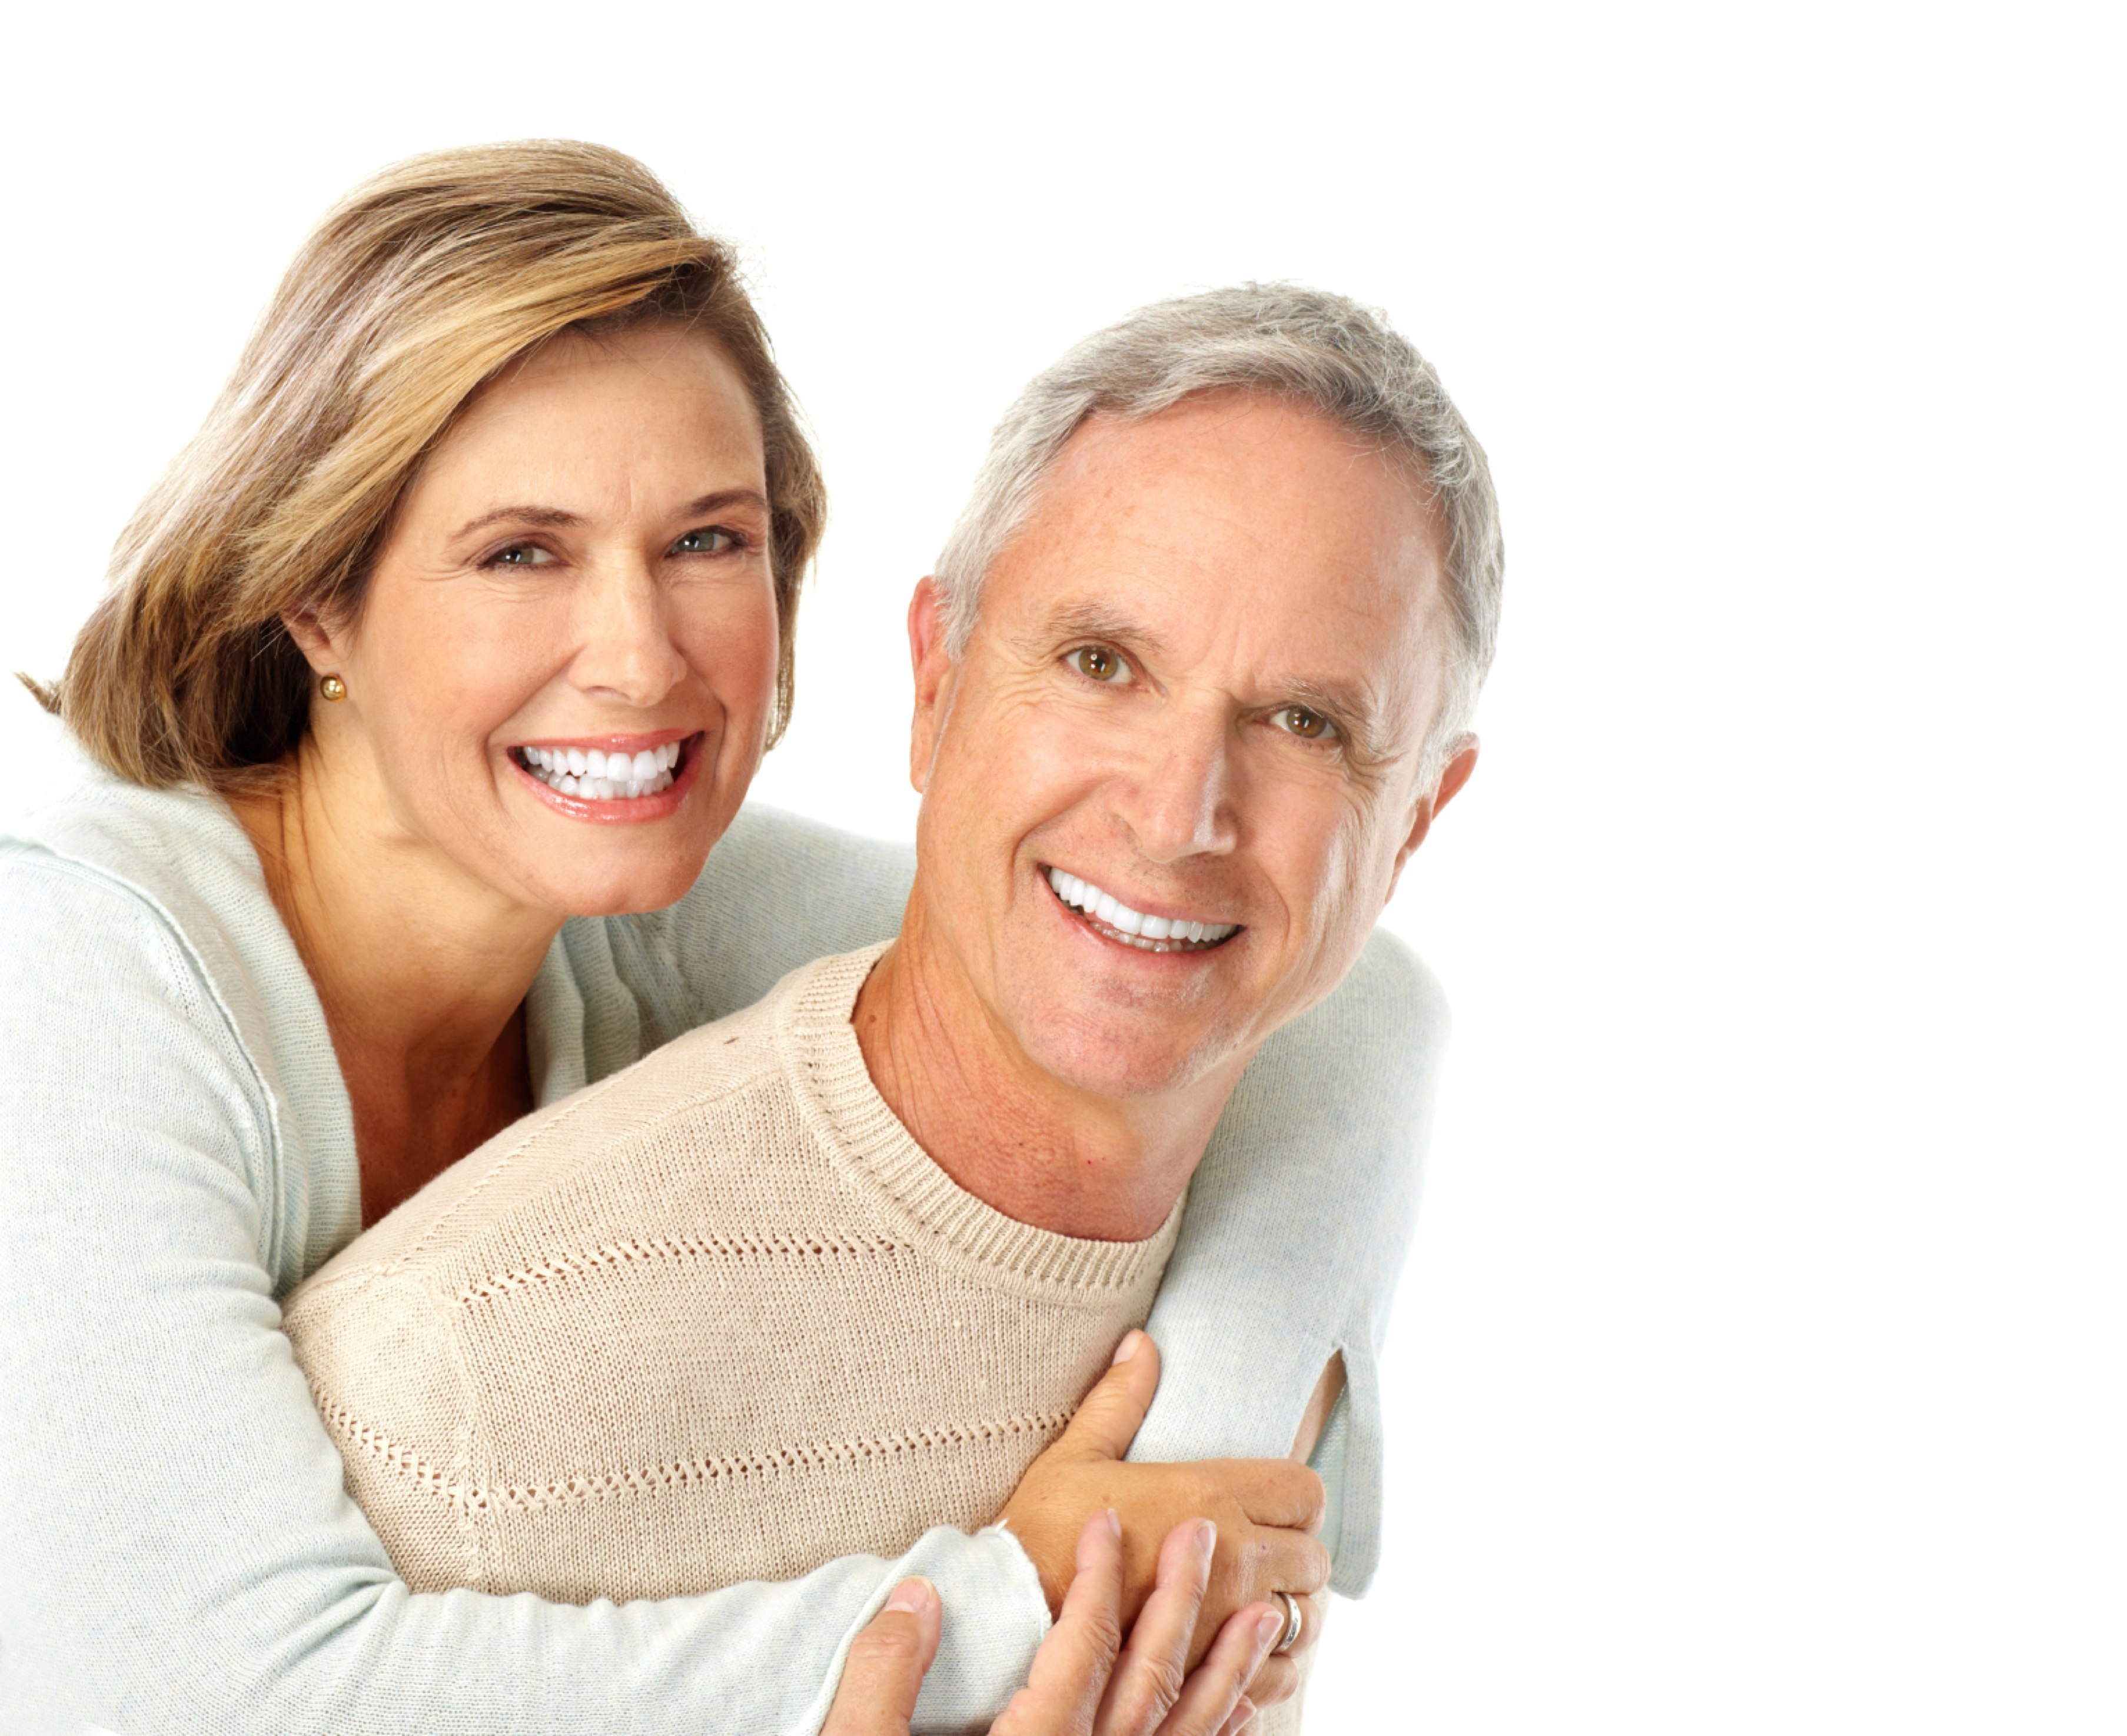 Dental Implants Transform Your Smile Georgia Oral And